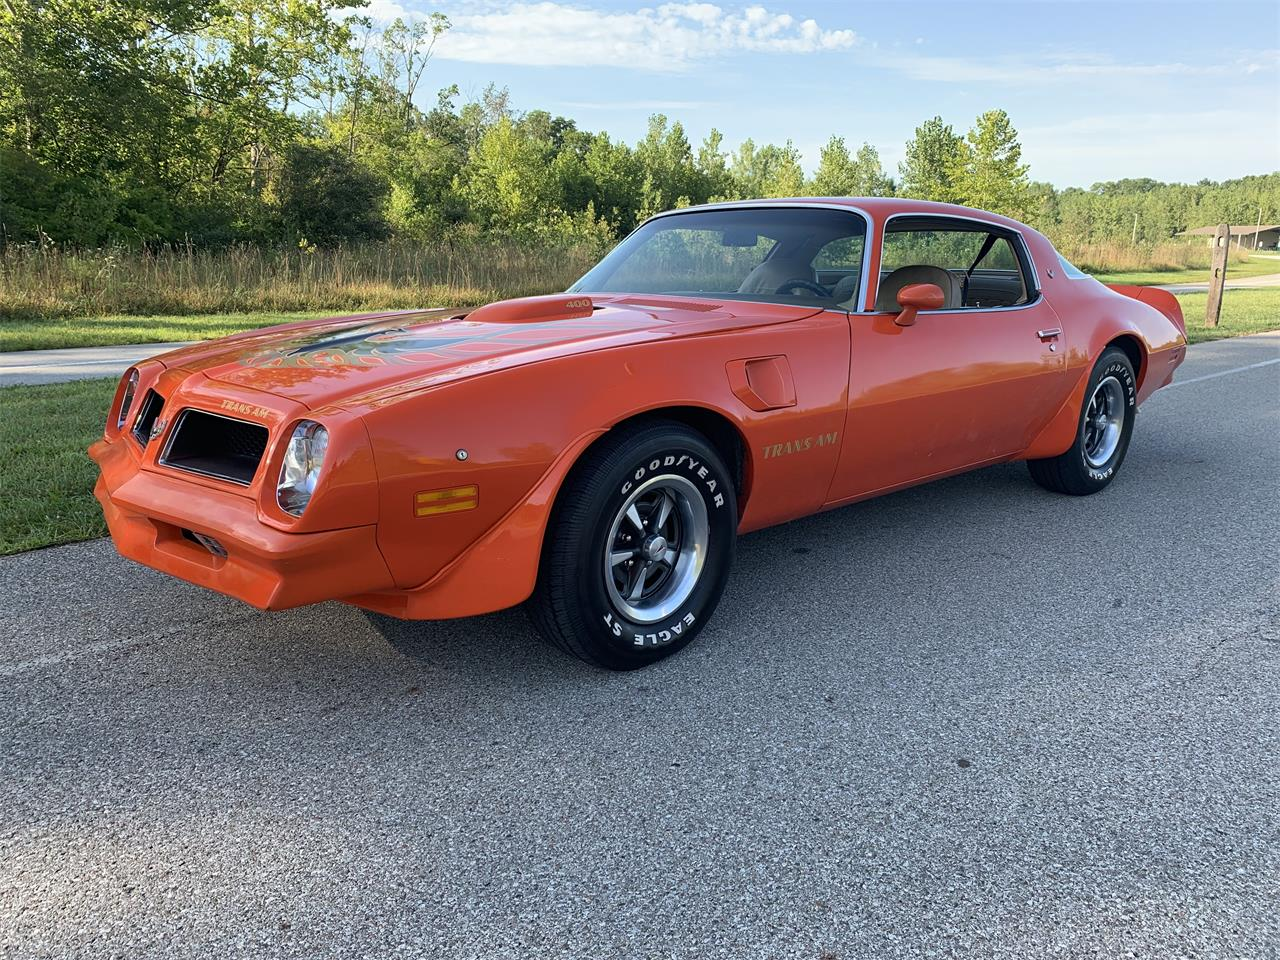 1976 Pontiac Firebird Trans Am (CC-1246471) for sale in Avon, Indiana